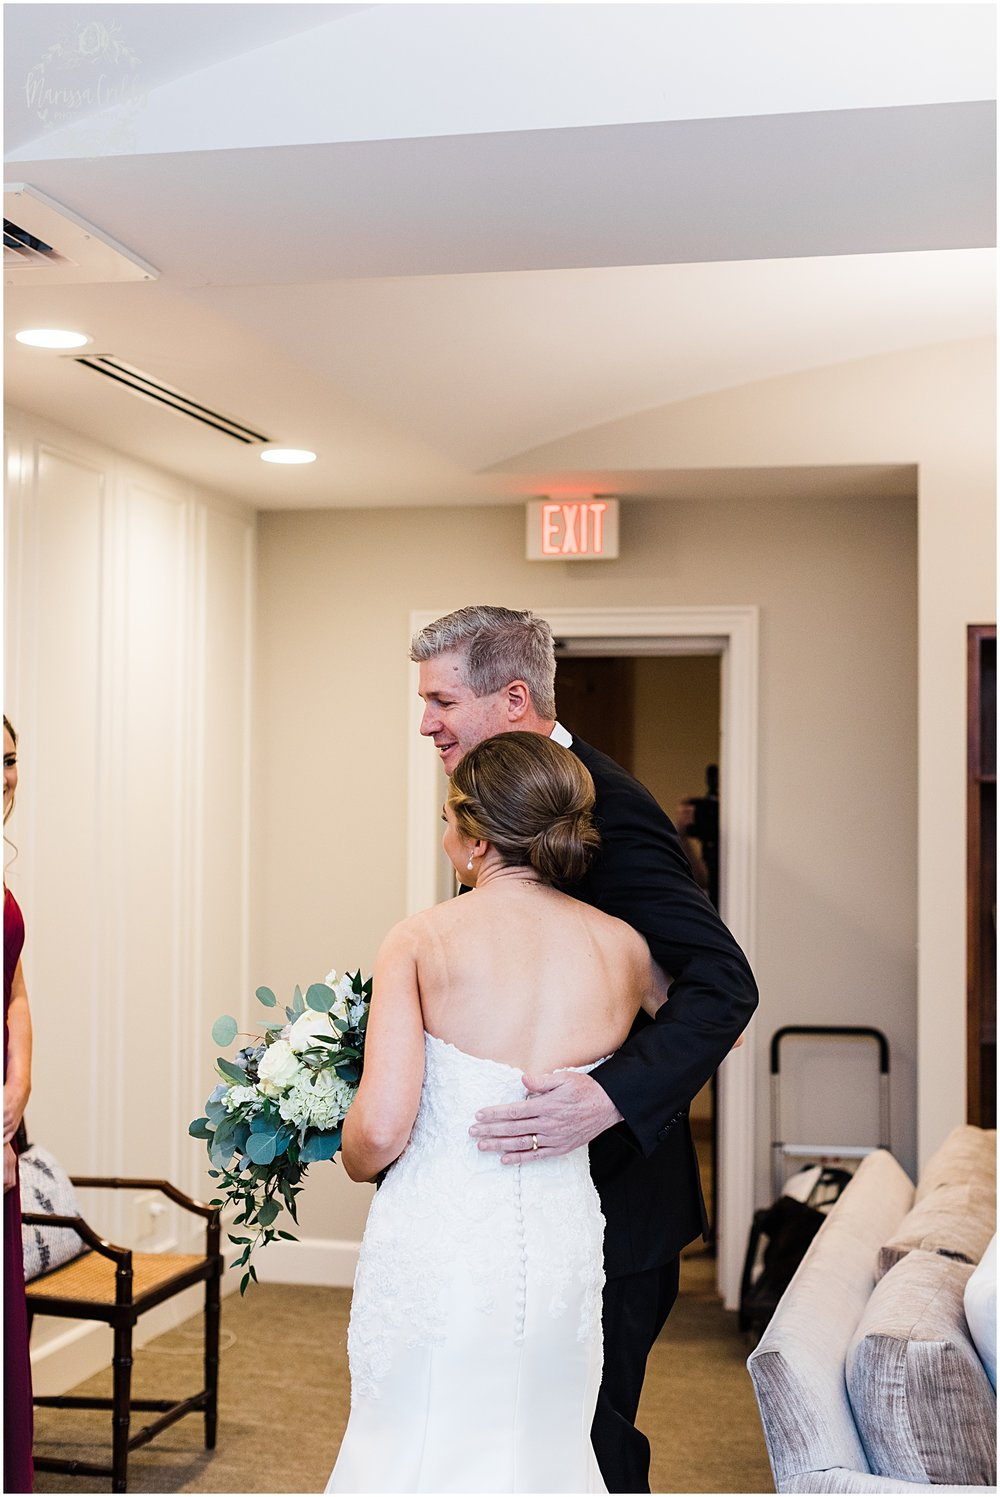 JOE & CAROLINE MARRIED | INDIAN HILLS COUNTRY CLUB | MARISSA CRIBBS PHOTOGRAPHY_7177.jpg